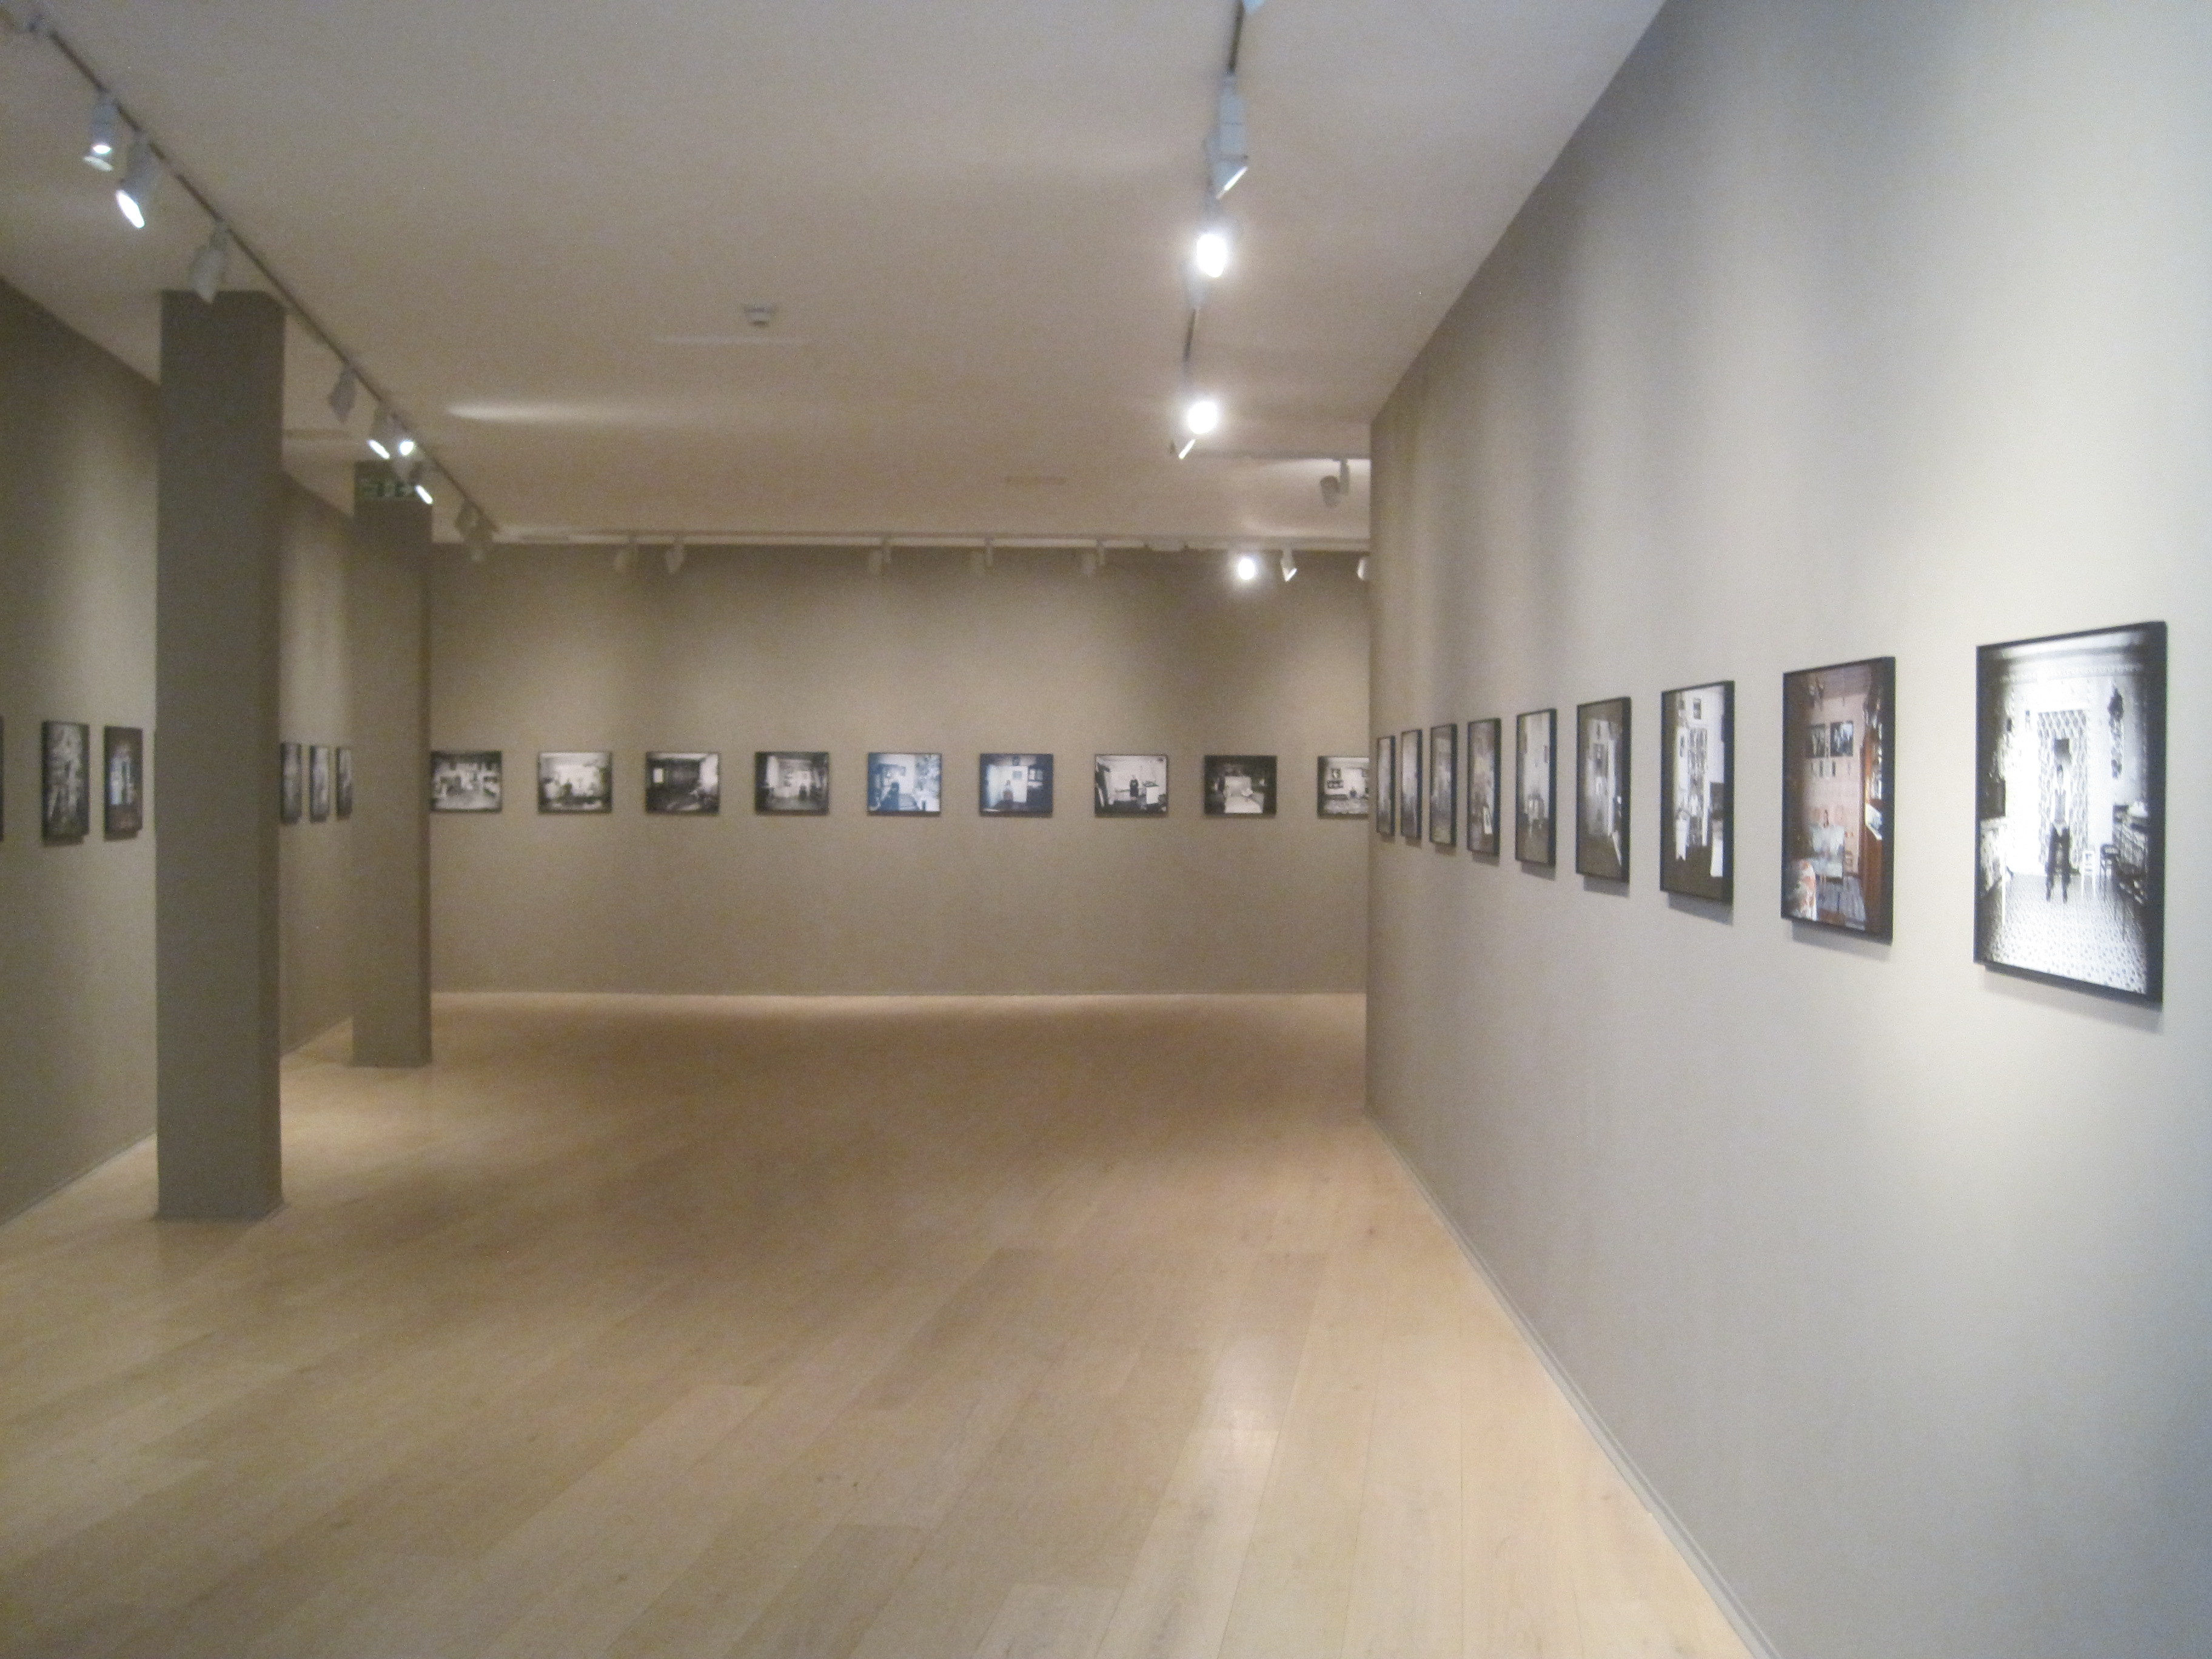 Installation view of photos by Zofia Rydet